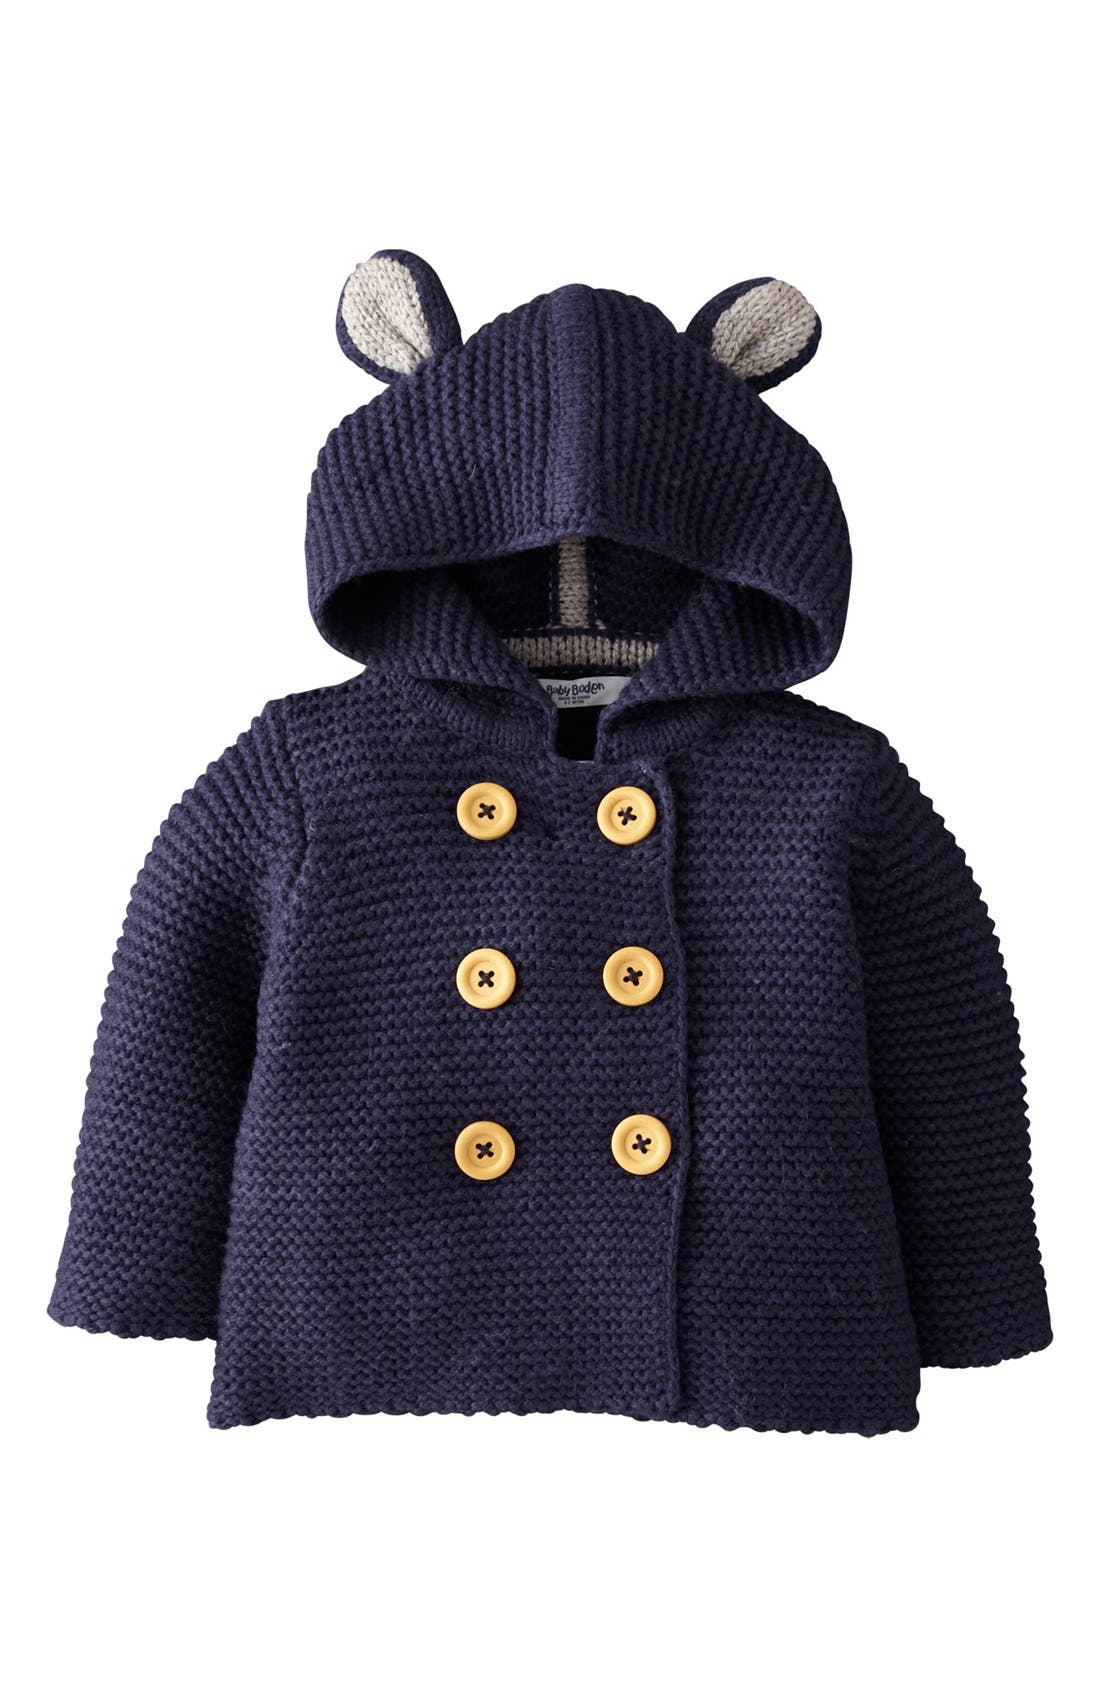 Alternate Image 1 Selected - Mini Boden Knit Mouse Ears Jacket (Baby Boys)